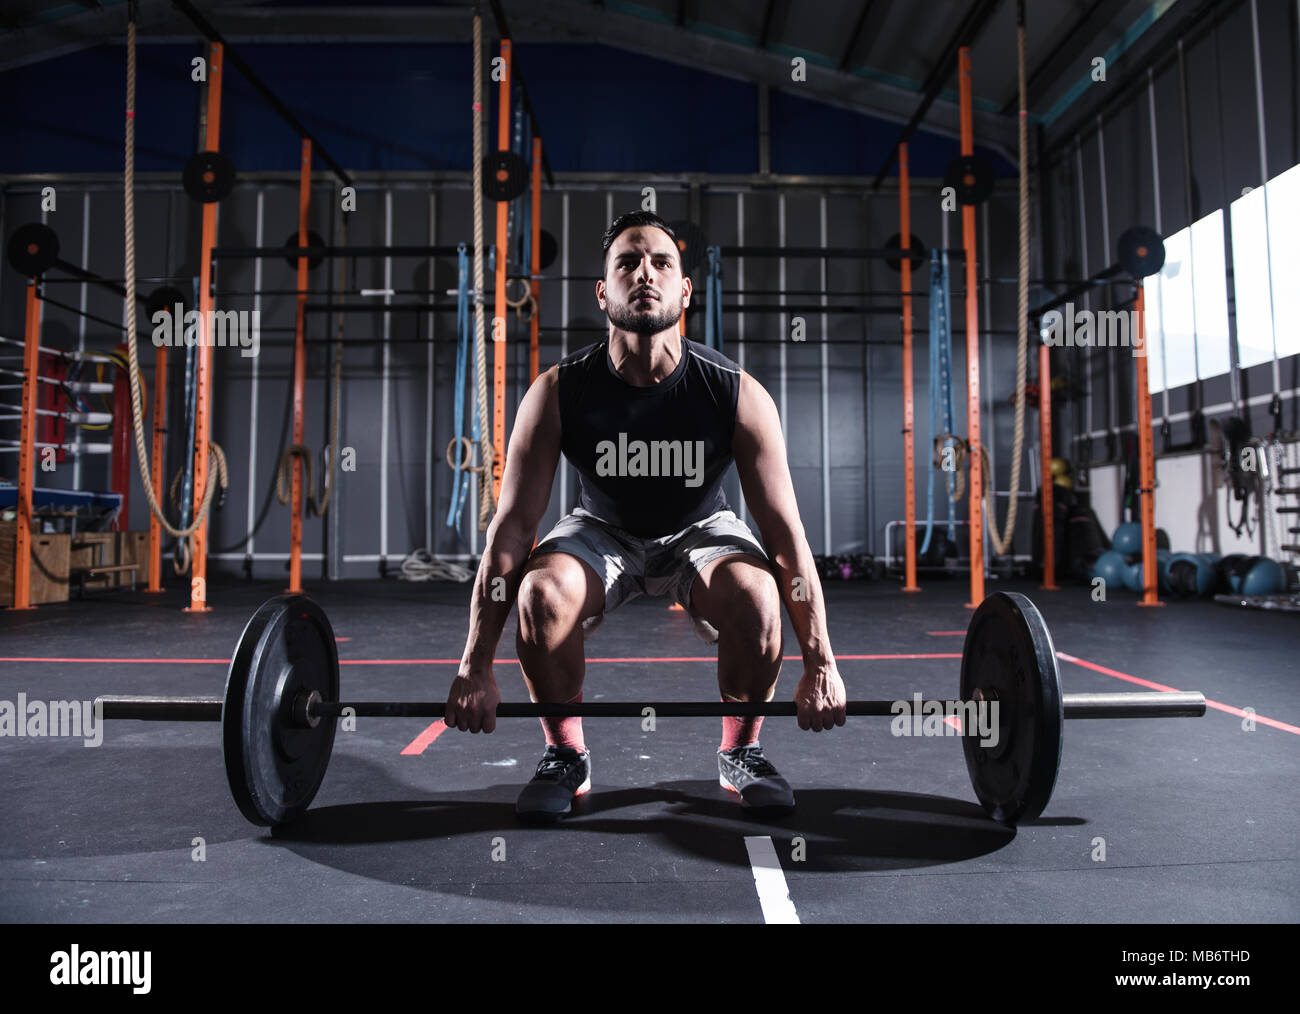 Athletic man works out at the gym with a barbell - Stock Image